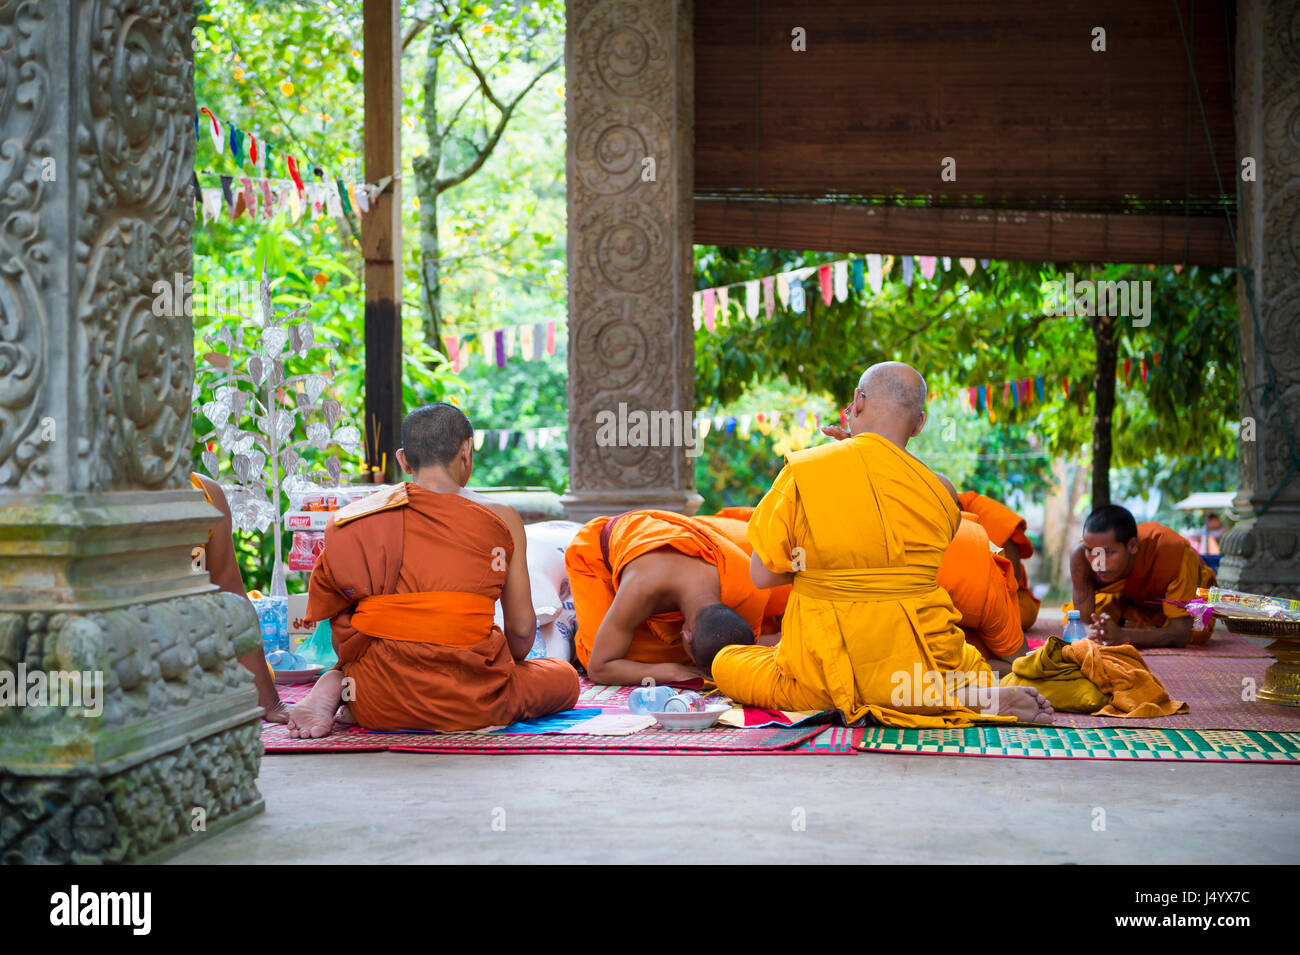 ANGKOR WAT, CAMBODIA - OCTOBER 30, 2014: Buddhist monks in saffron robes perform a ceremony at an outdoor temple - Stock Image